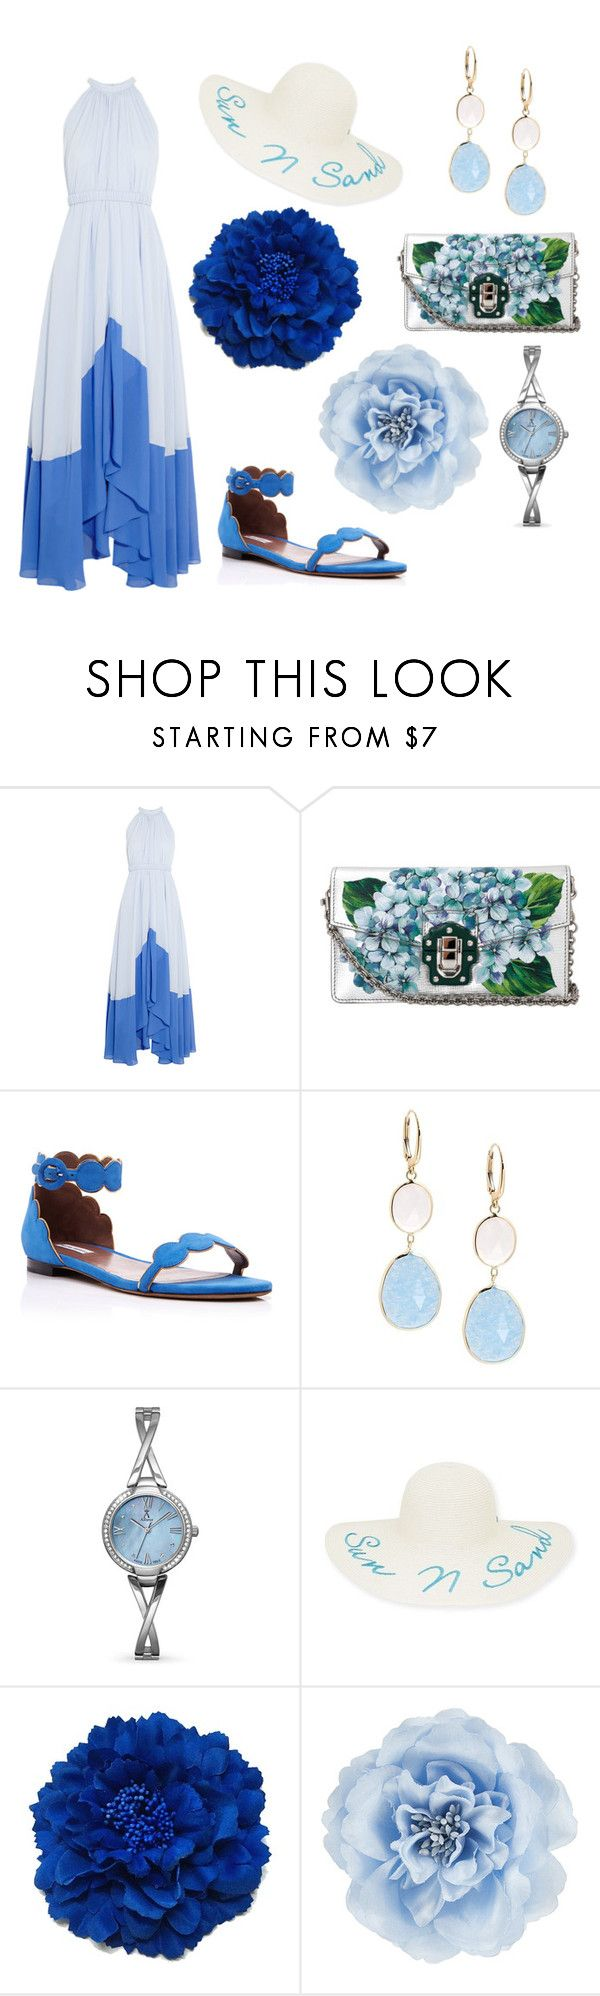 """""""Untitled #31"""" by mecho-puh ❤ liked on Polyvore featuring Saloni, Dolce&Gabbana, Tabitha Simmons, Saks Fifth Avenue, Allurez, New Directions and Monsoon"""